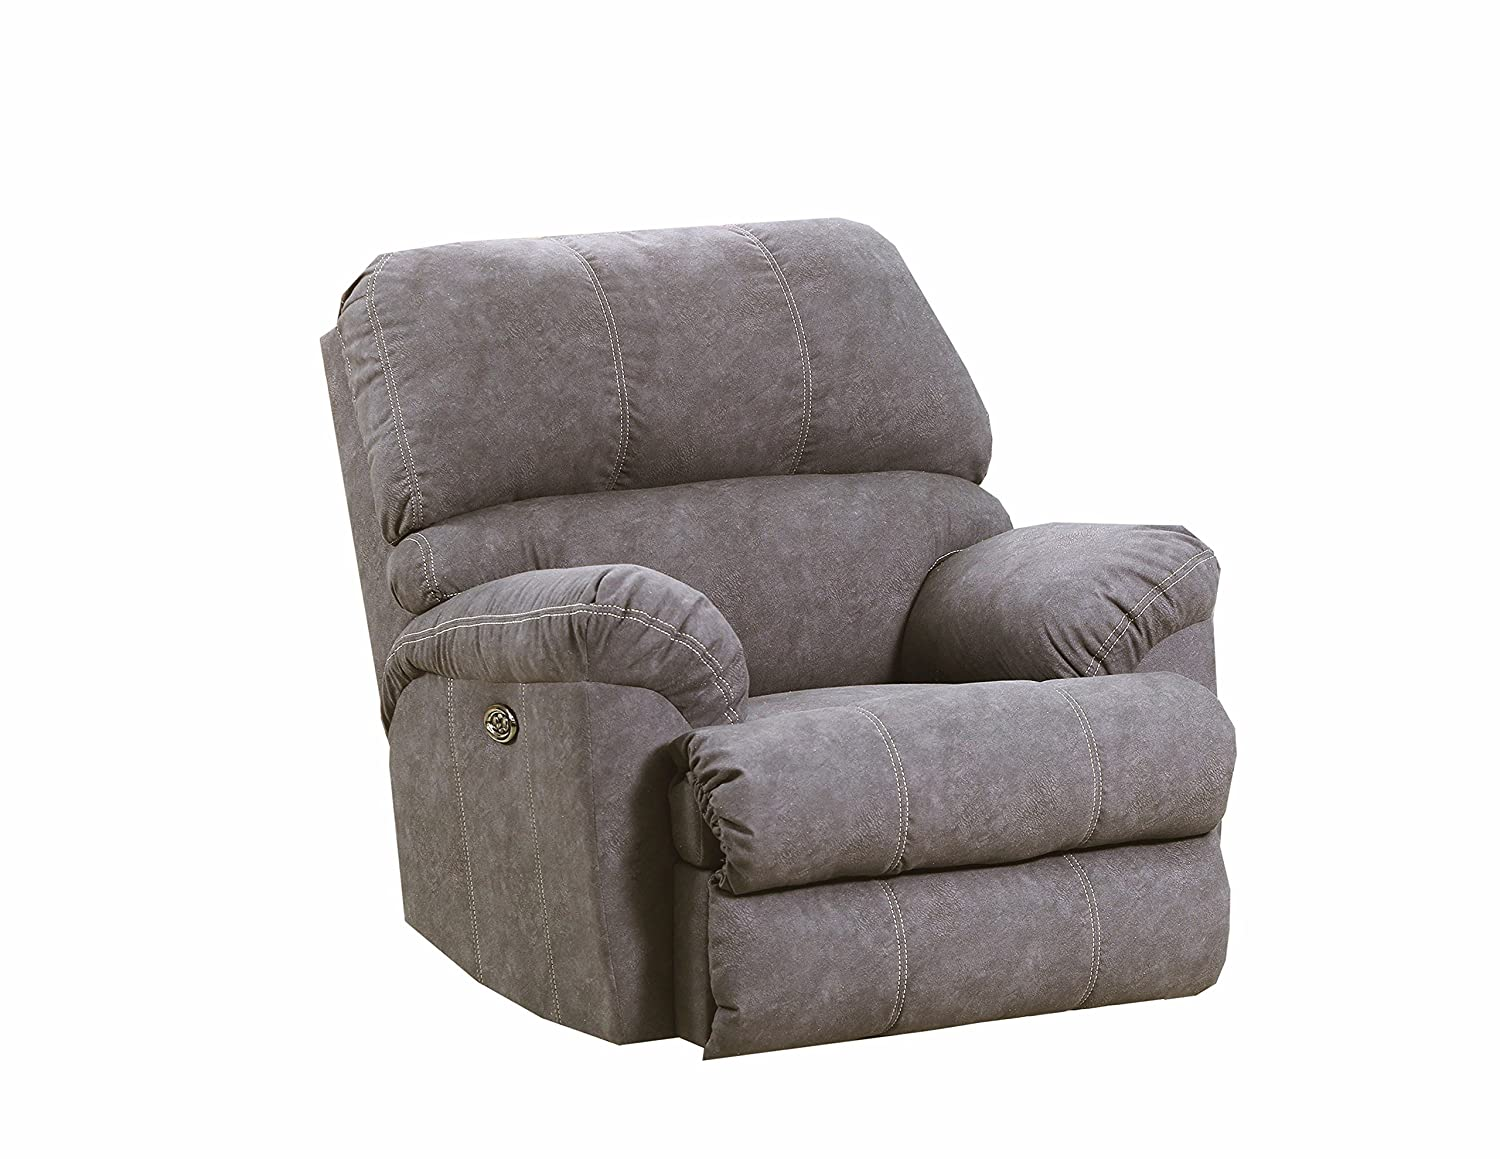 Amazon.com: Simmons Upholstery 9511P-19 Palermo Charcoal ...